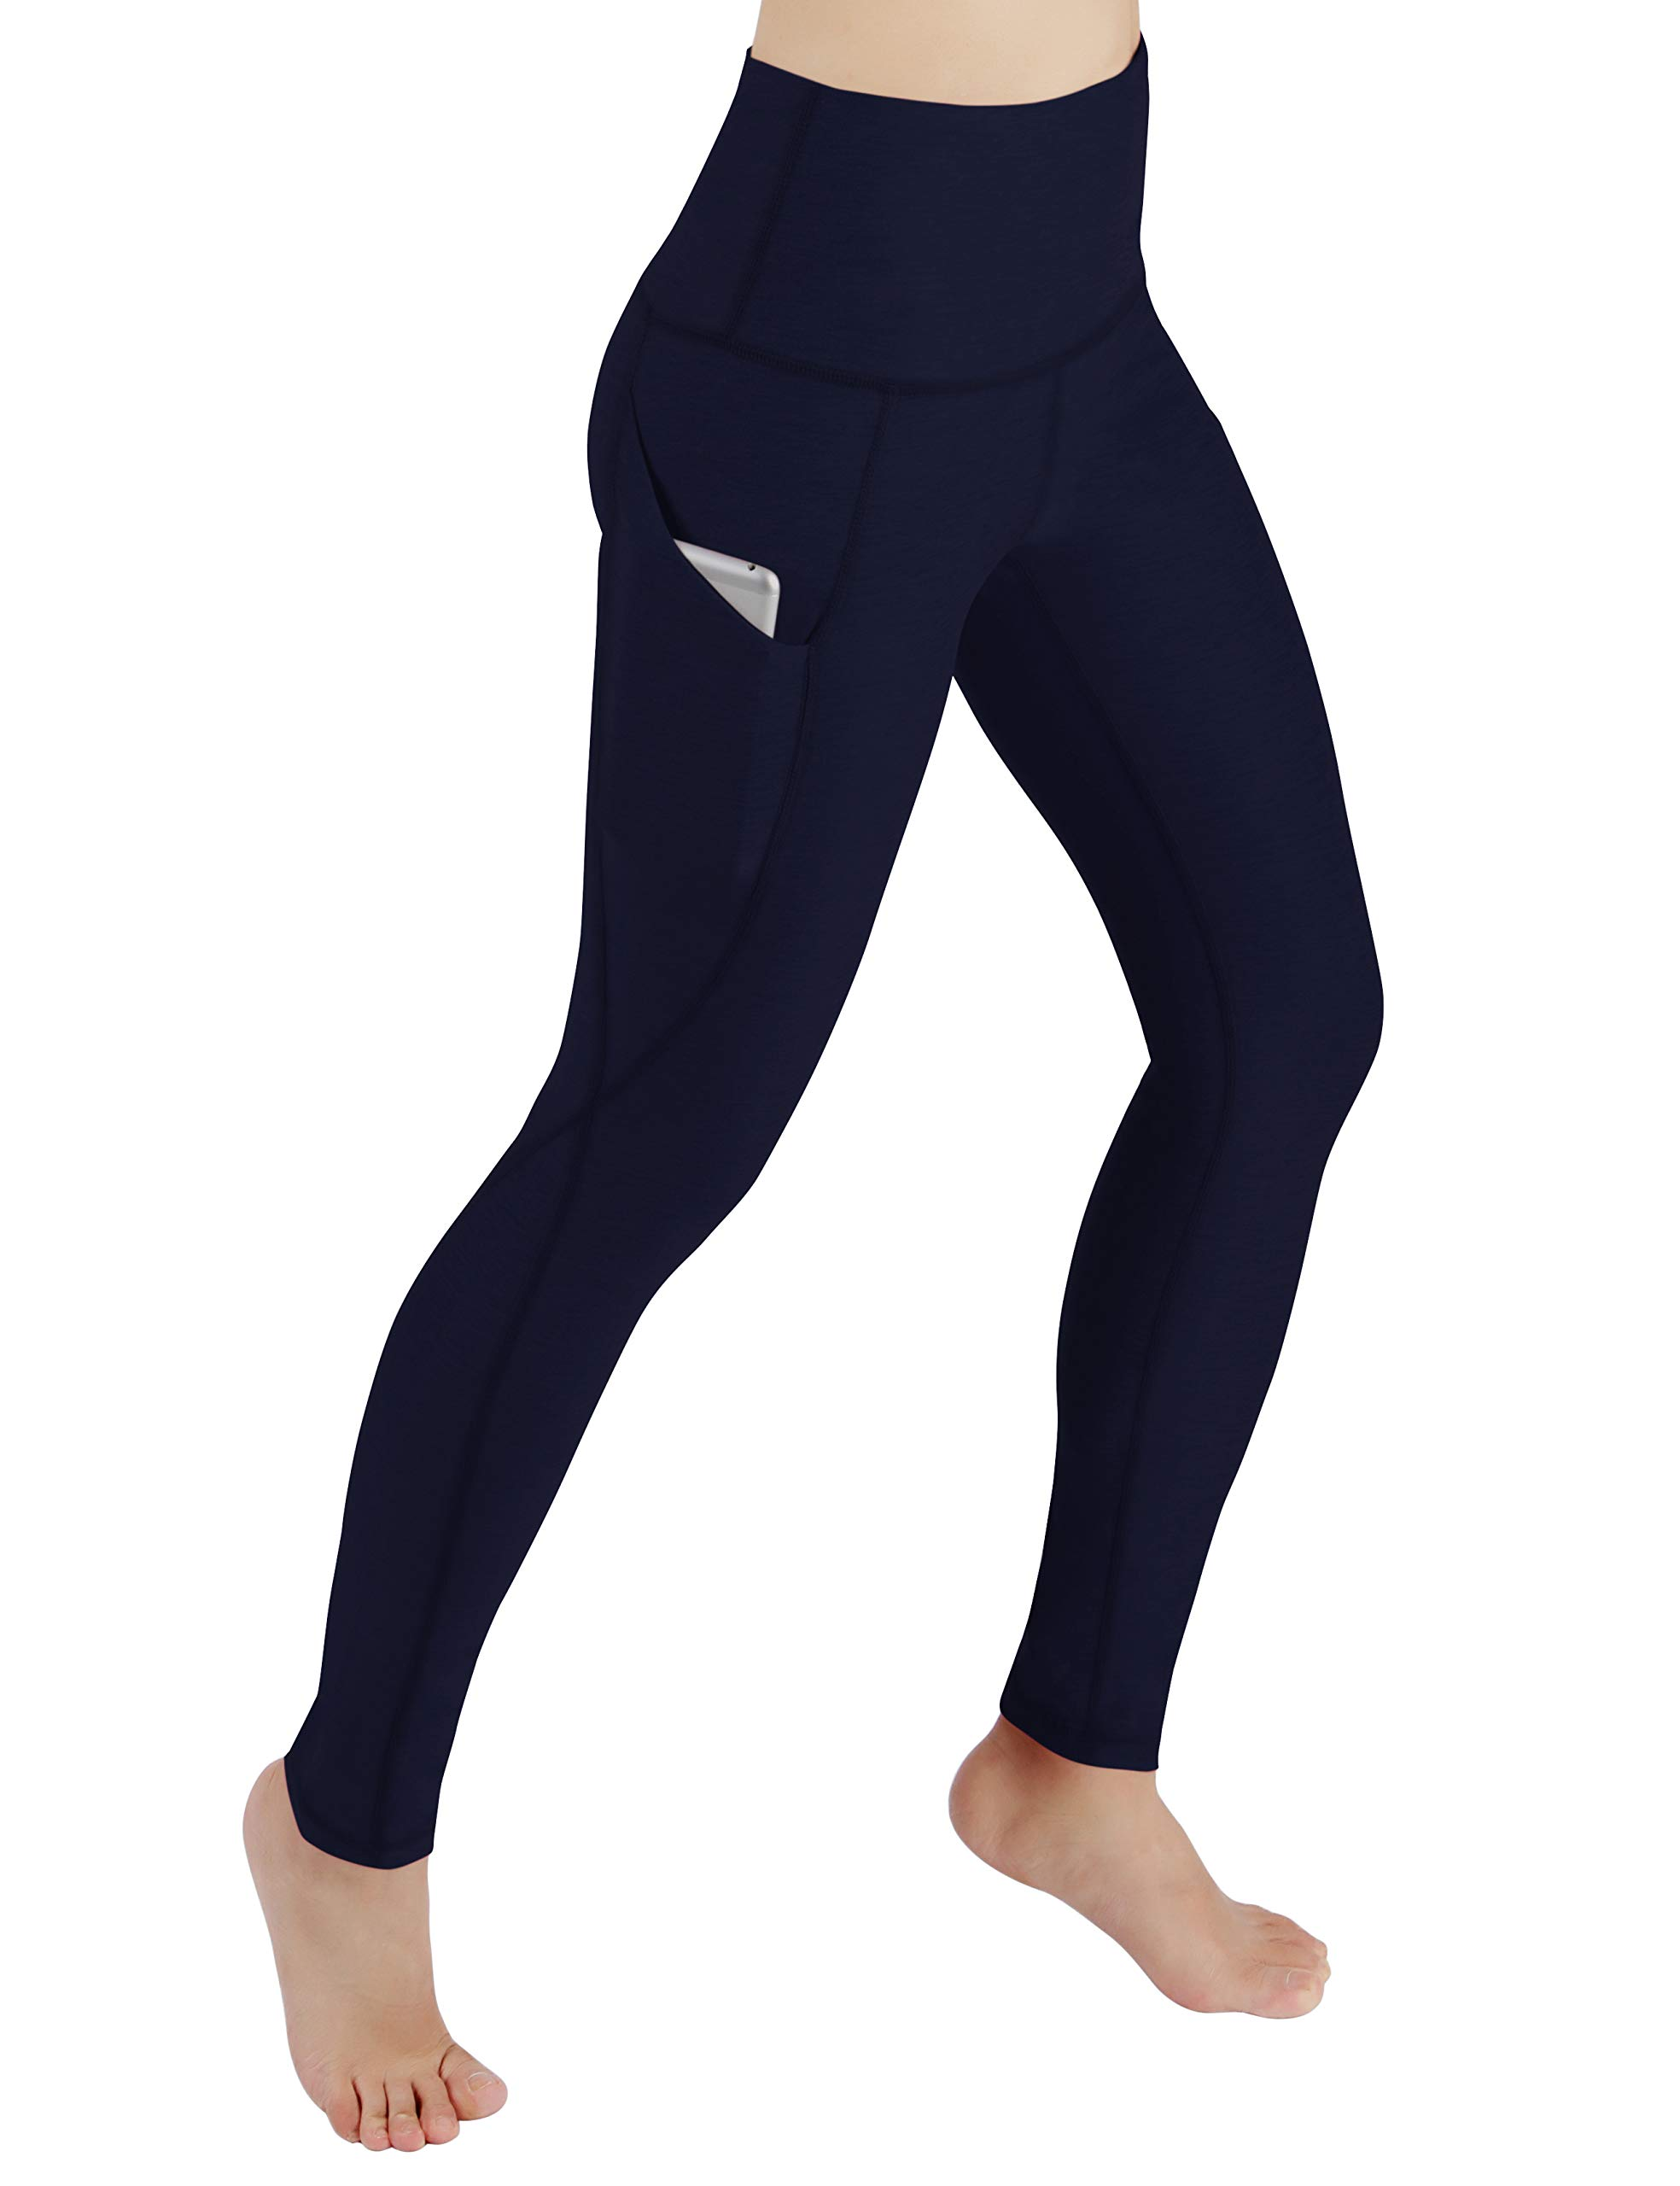 ODODOS Women's High Waist Yoga Pants with Pockets,Tummy Control,Workout Pants Running 4 Way Stretch Yoga Leggings with Pockets,Navy,Large by ODODOS